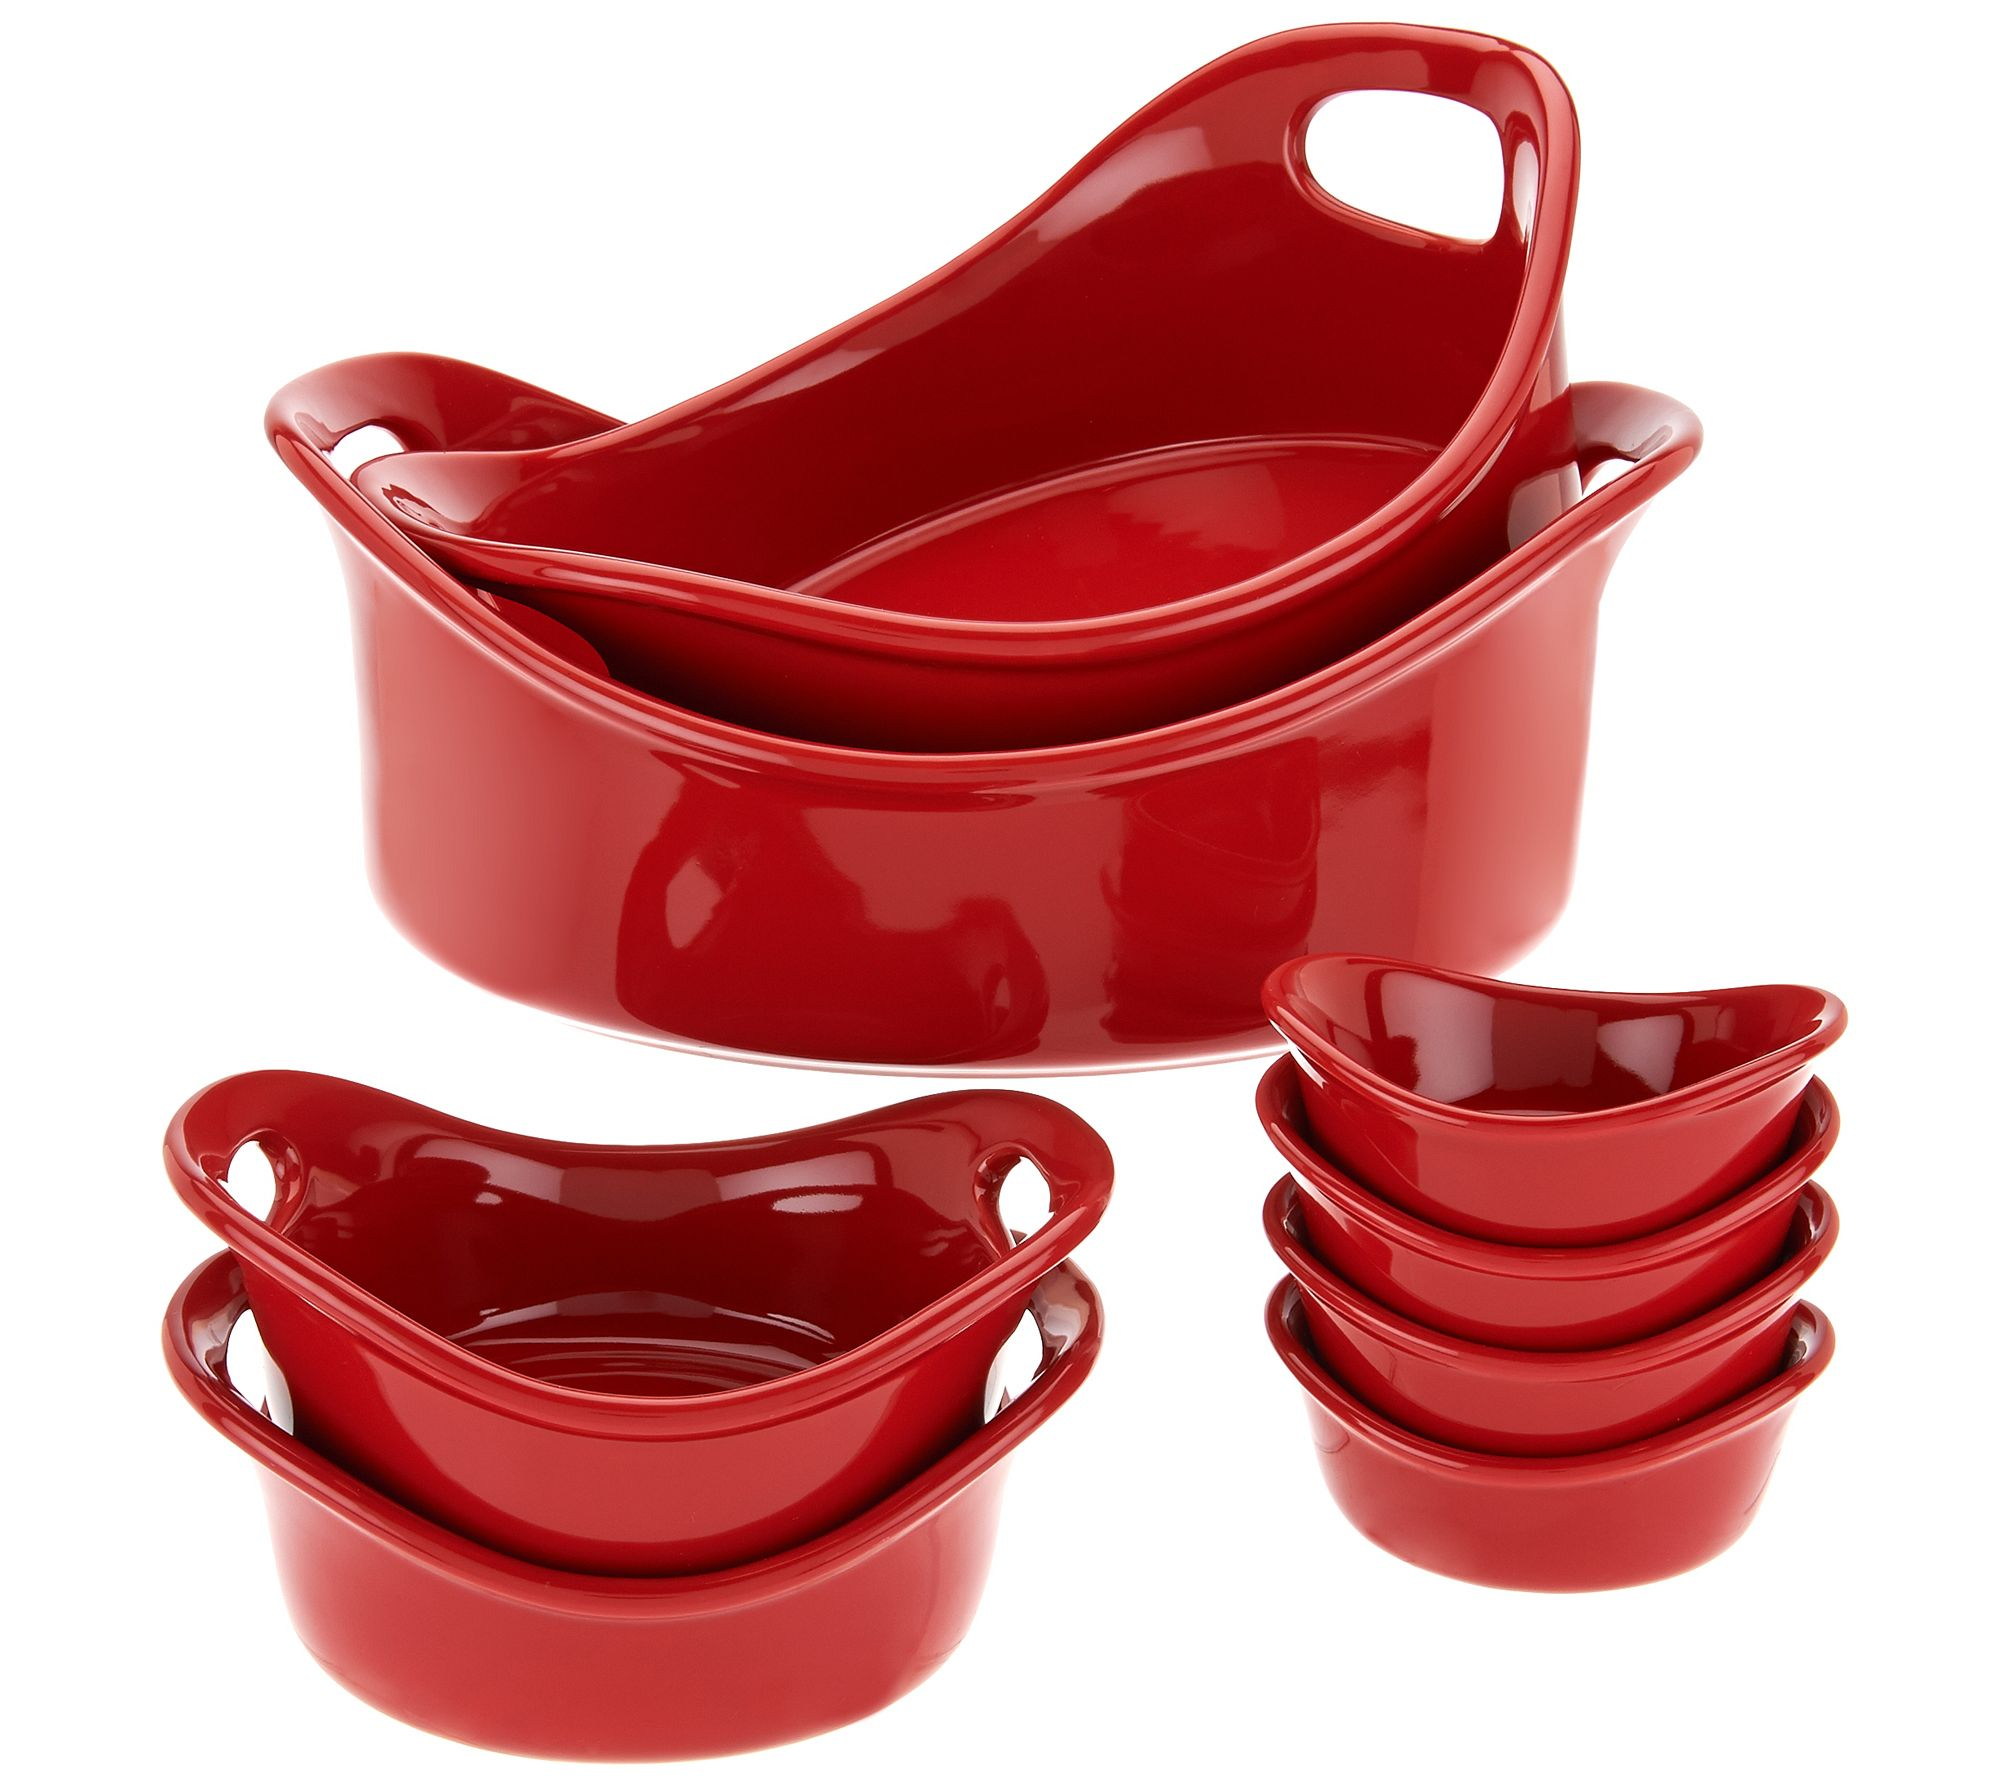 rachael ray bubble u0026 brown 8piece round bakeware set page 1 u2014 qvccom - Bakeware Sets